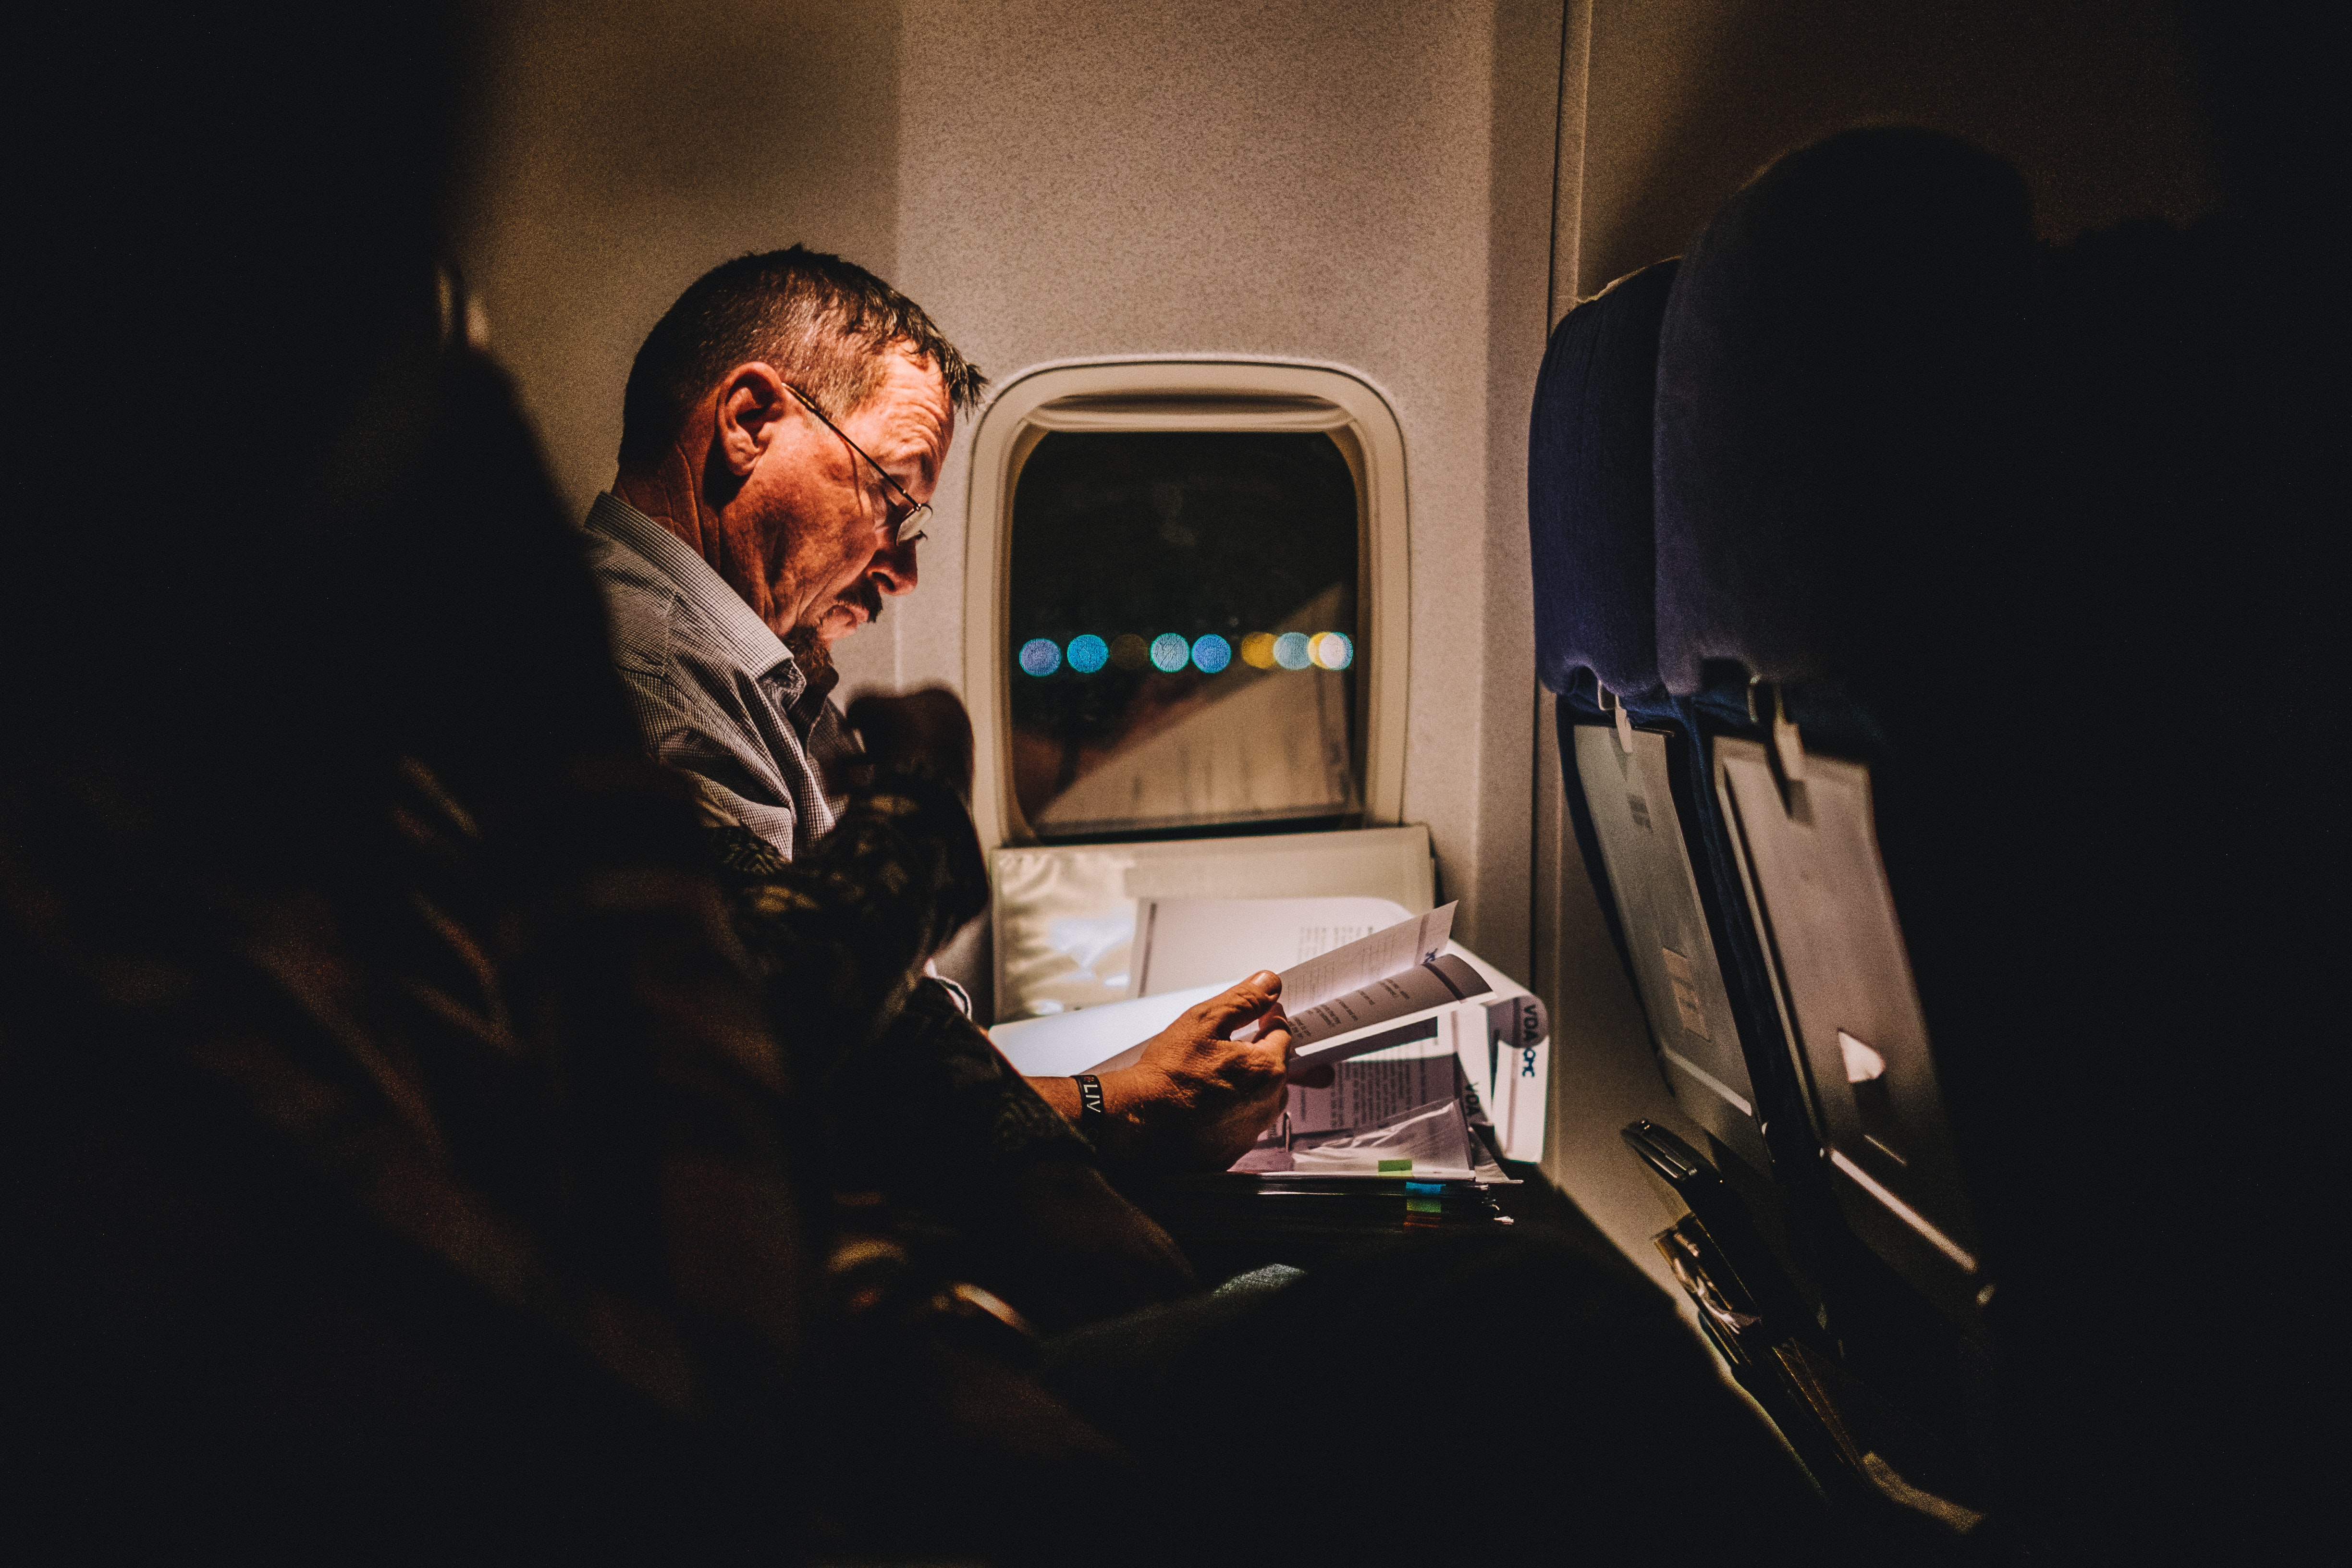 A man looks at documents in a plane with the bokeh effect in the window.